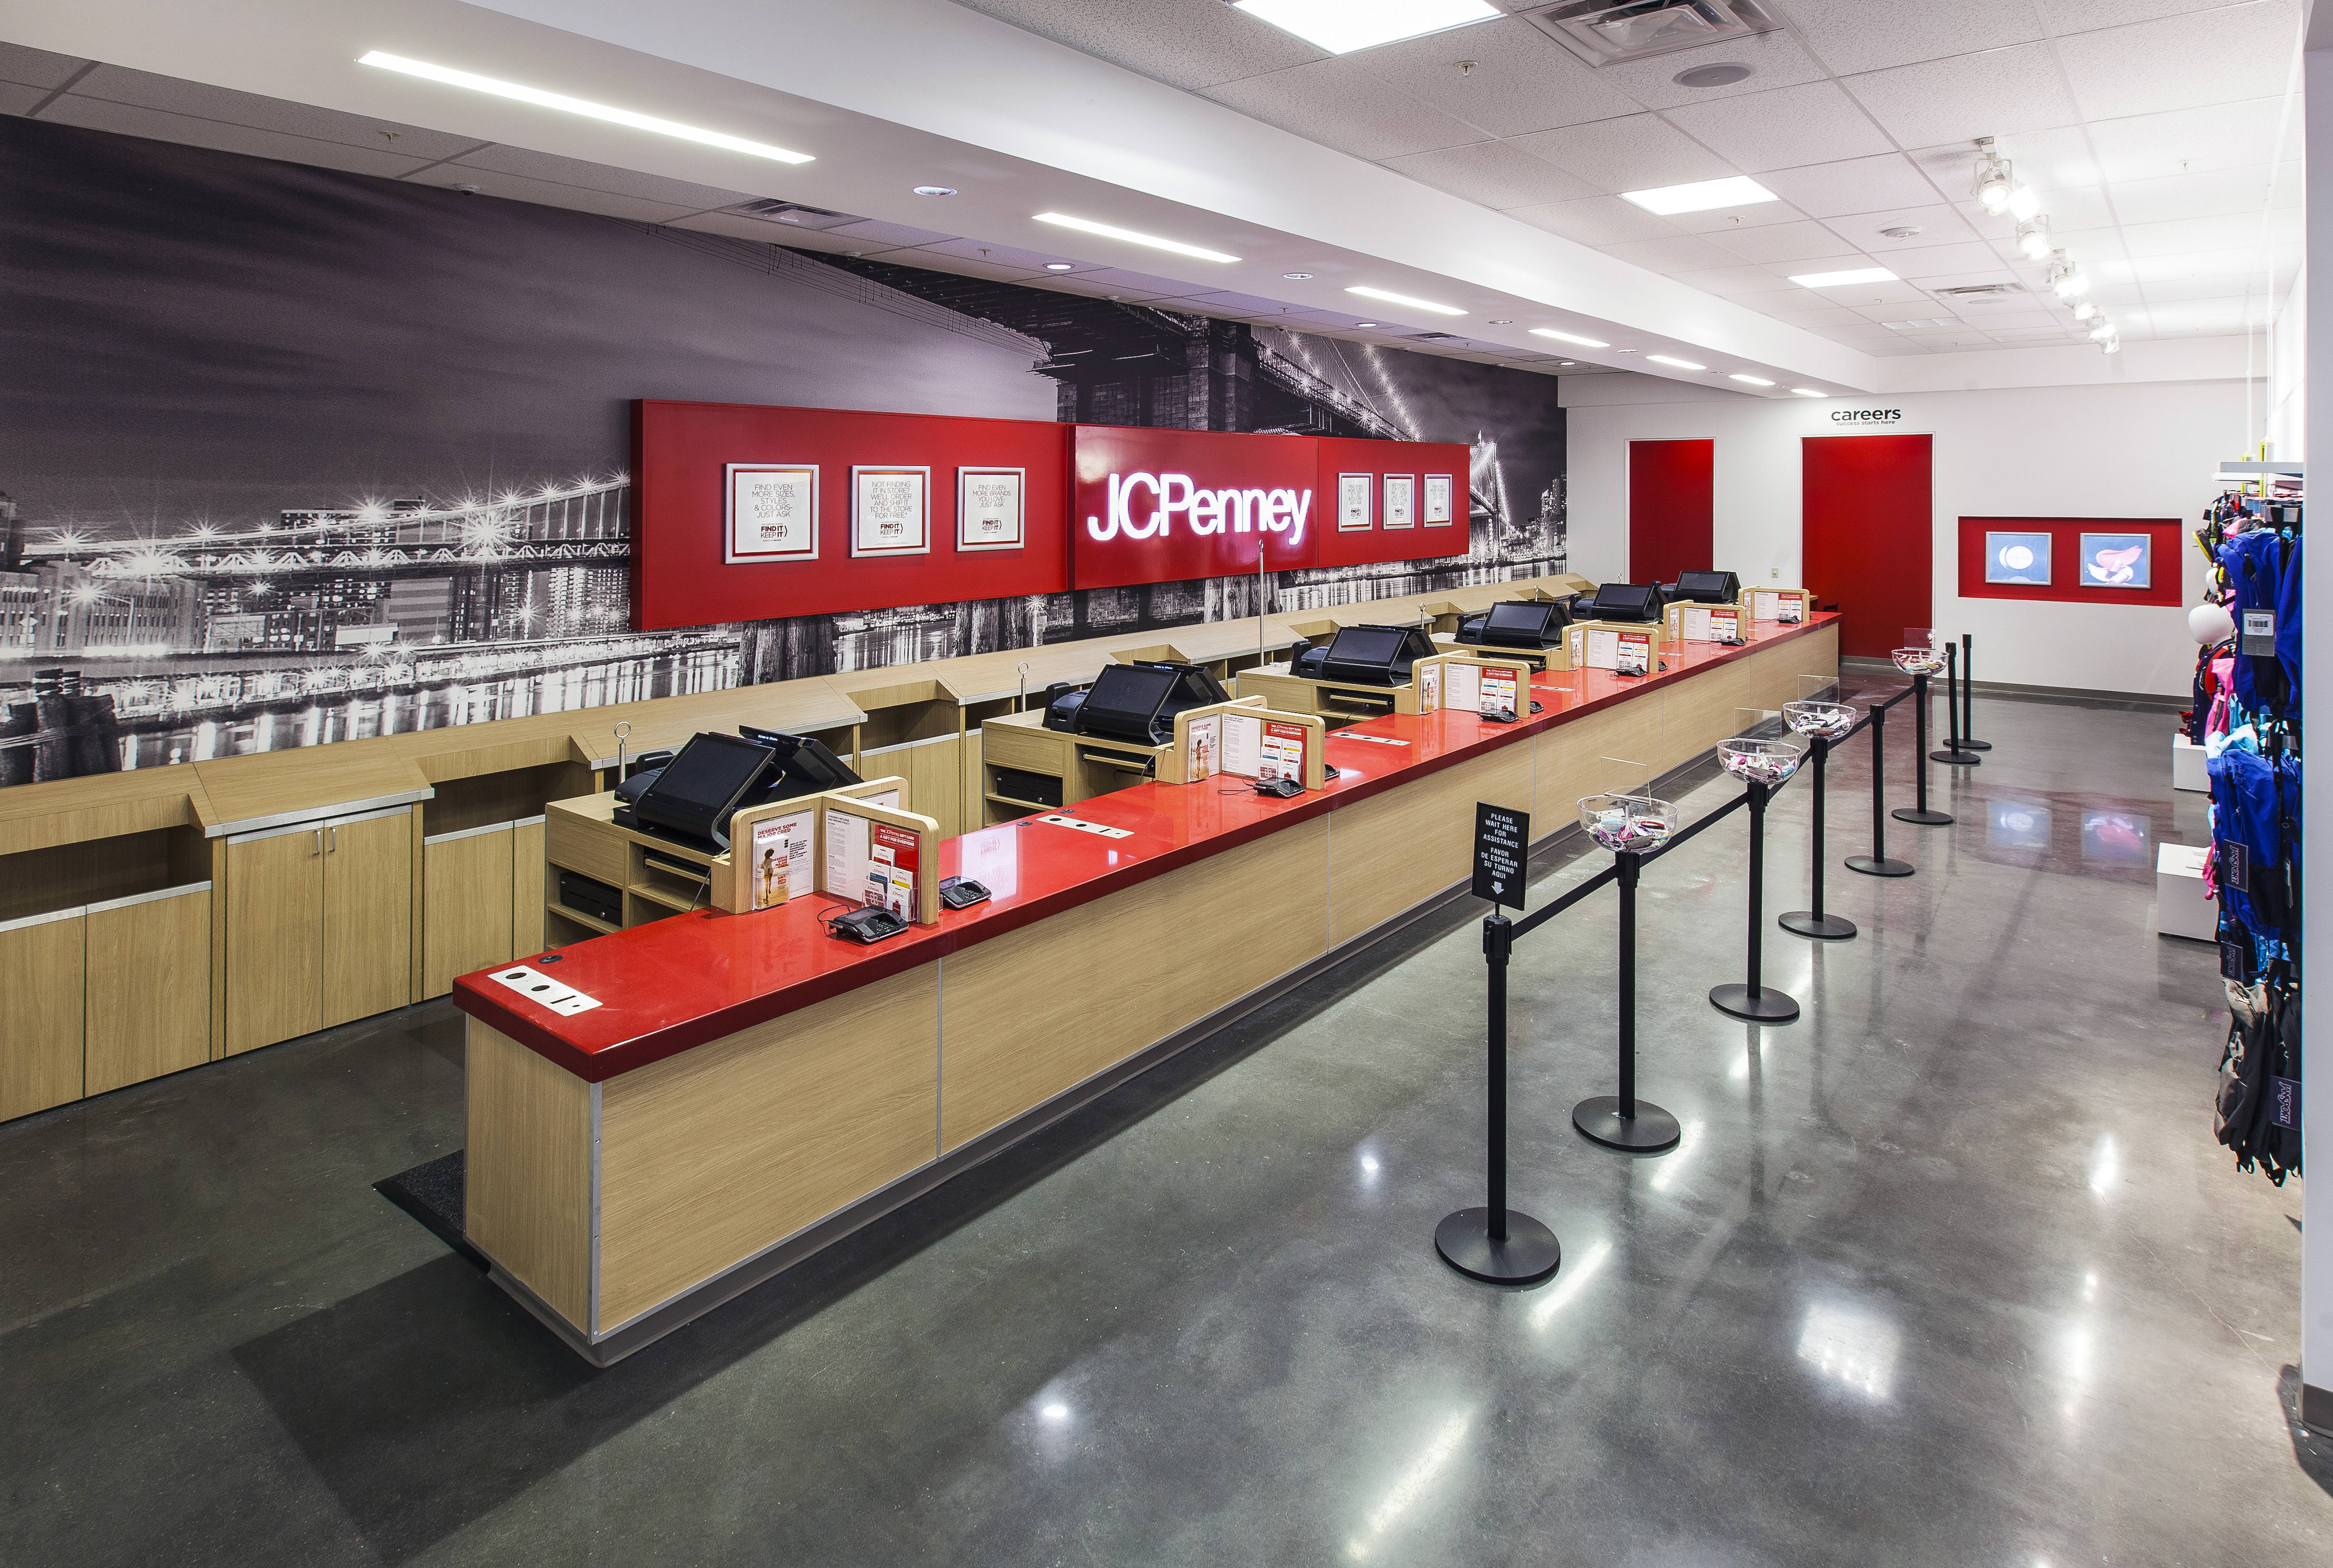 buy popular 4fcfe 3f543 JCPenney explains why it dropped Apple Pay   TechCrunch